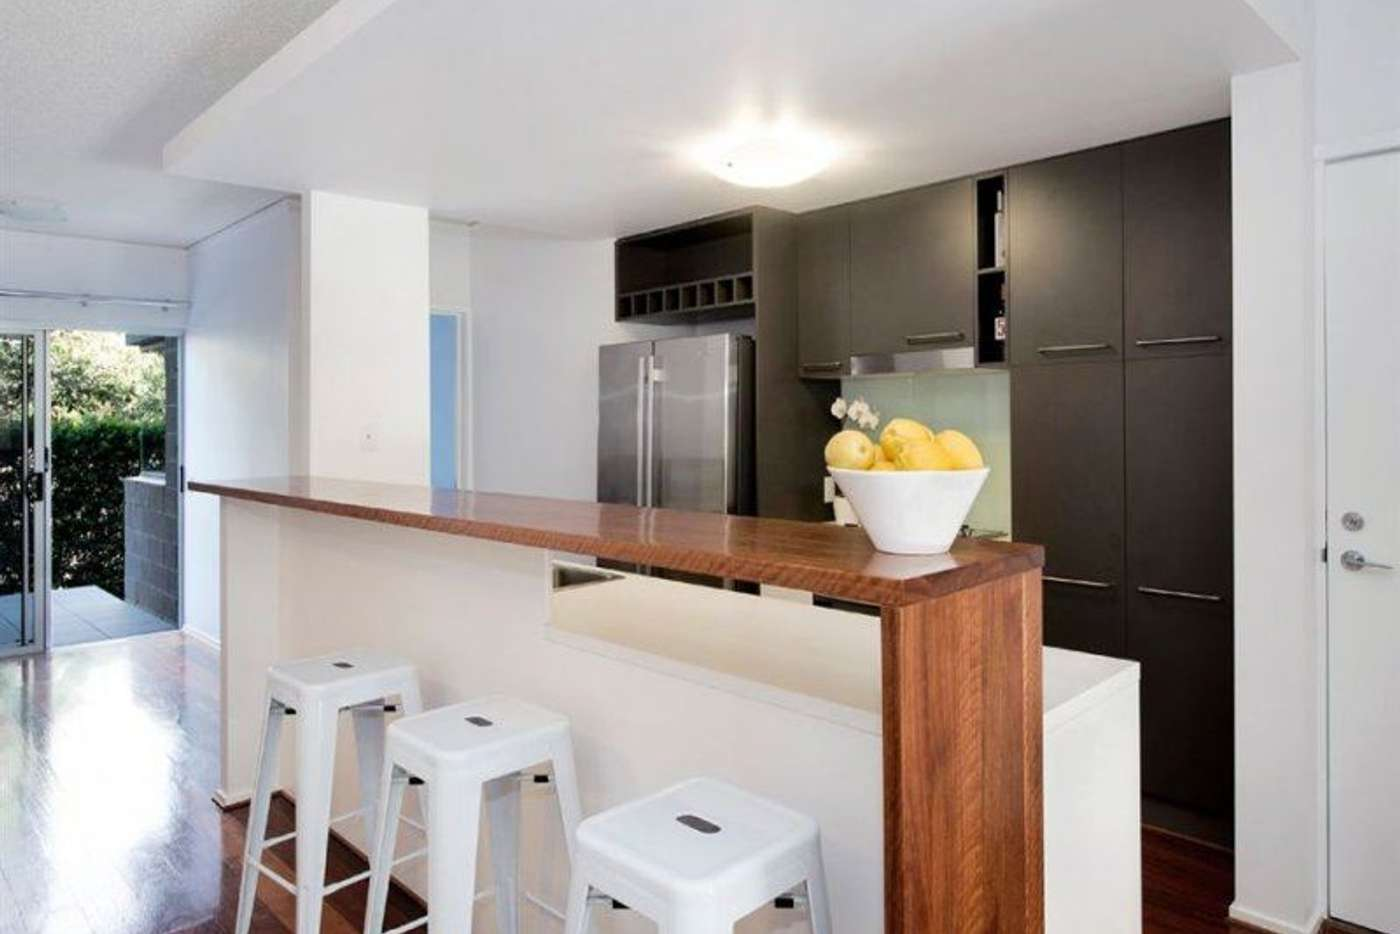 Main view of Homely apartment listing, 20/17 Ferry Lane, Bulimba QLD 4171